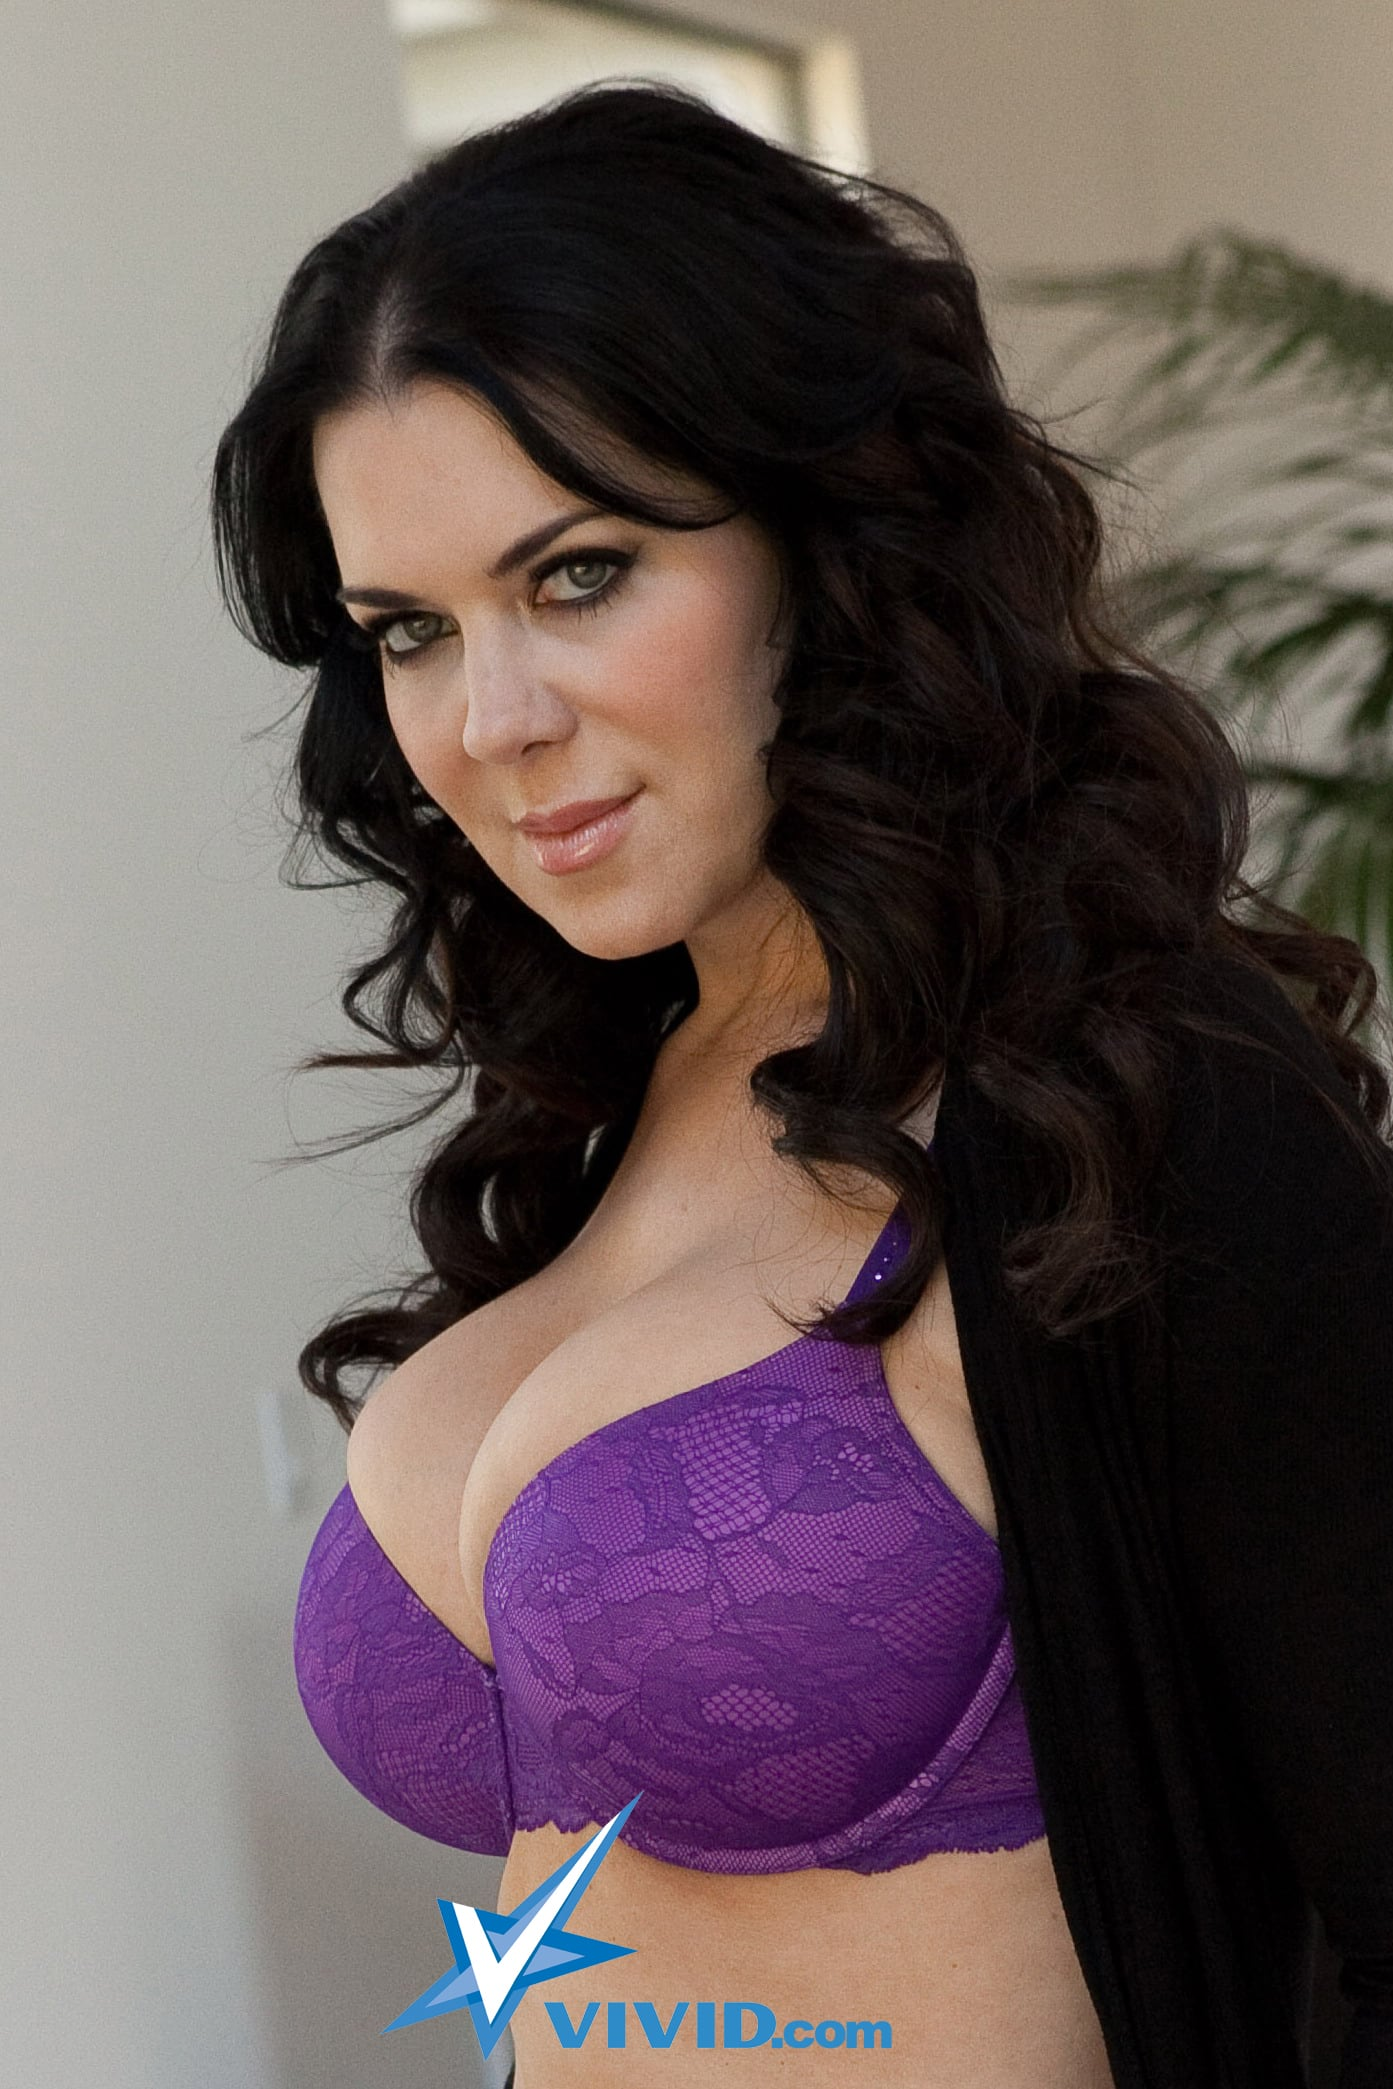 Backdoor To Chyna Pics porn identity: chyna ends relationship with pr firm - the